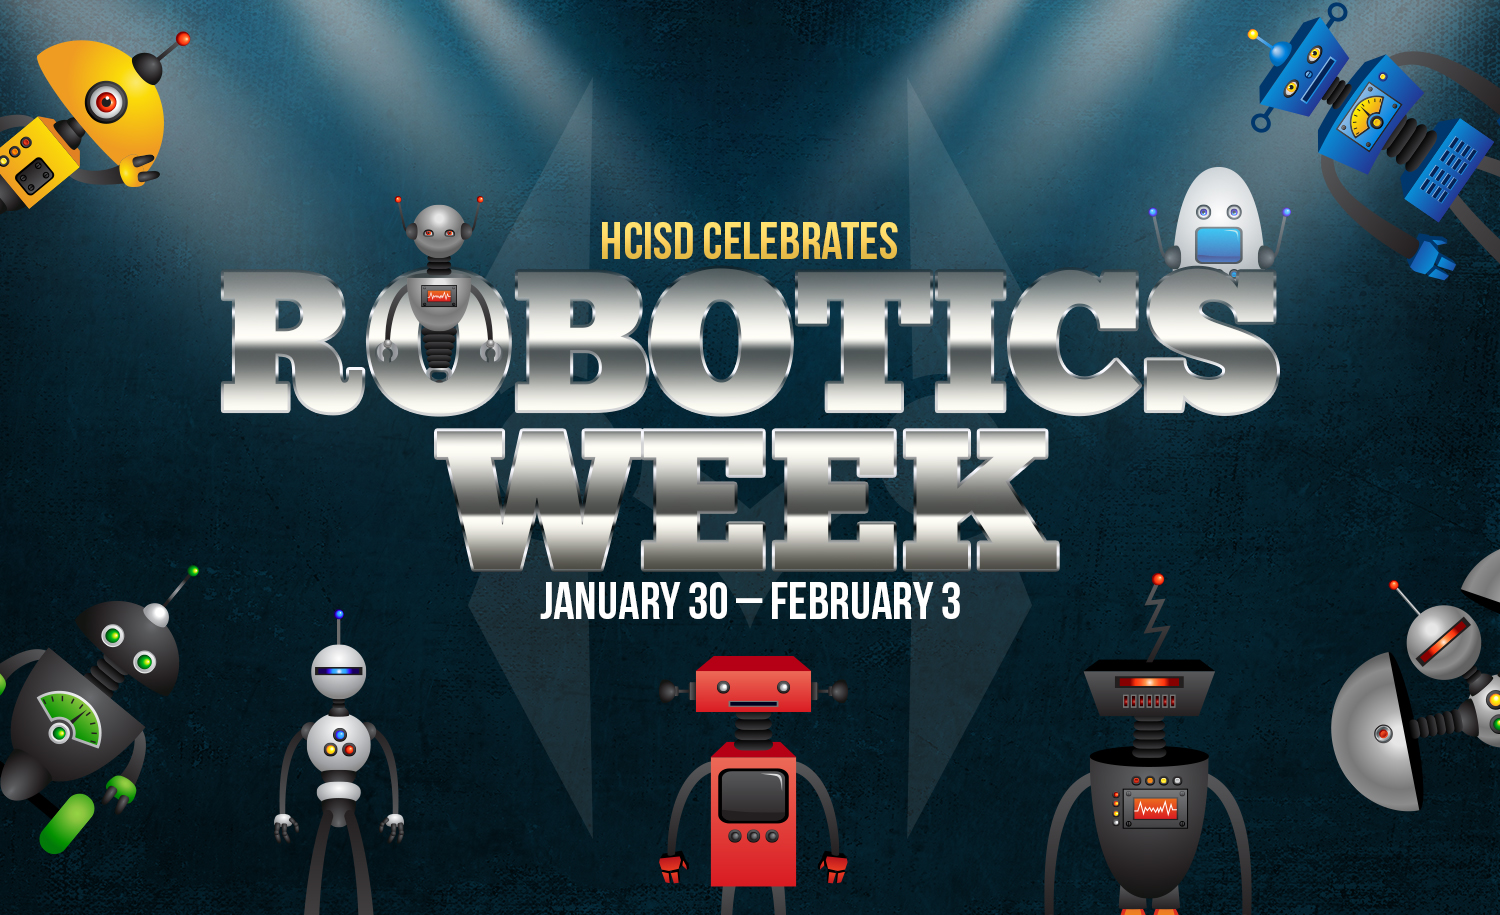 HCISD celebrates Robotics Week